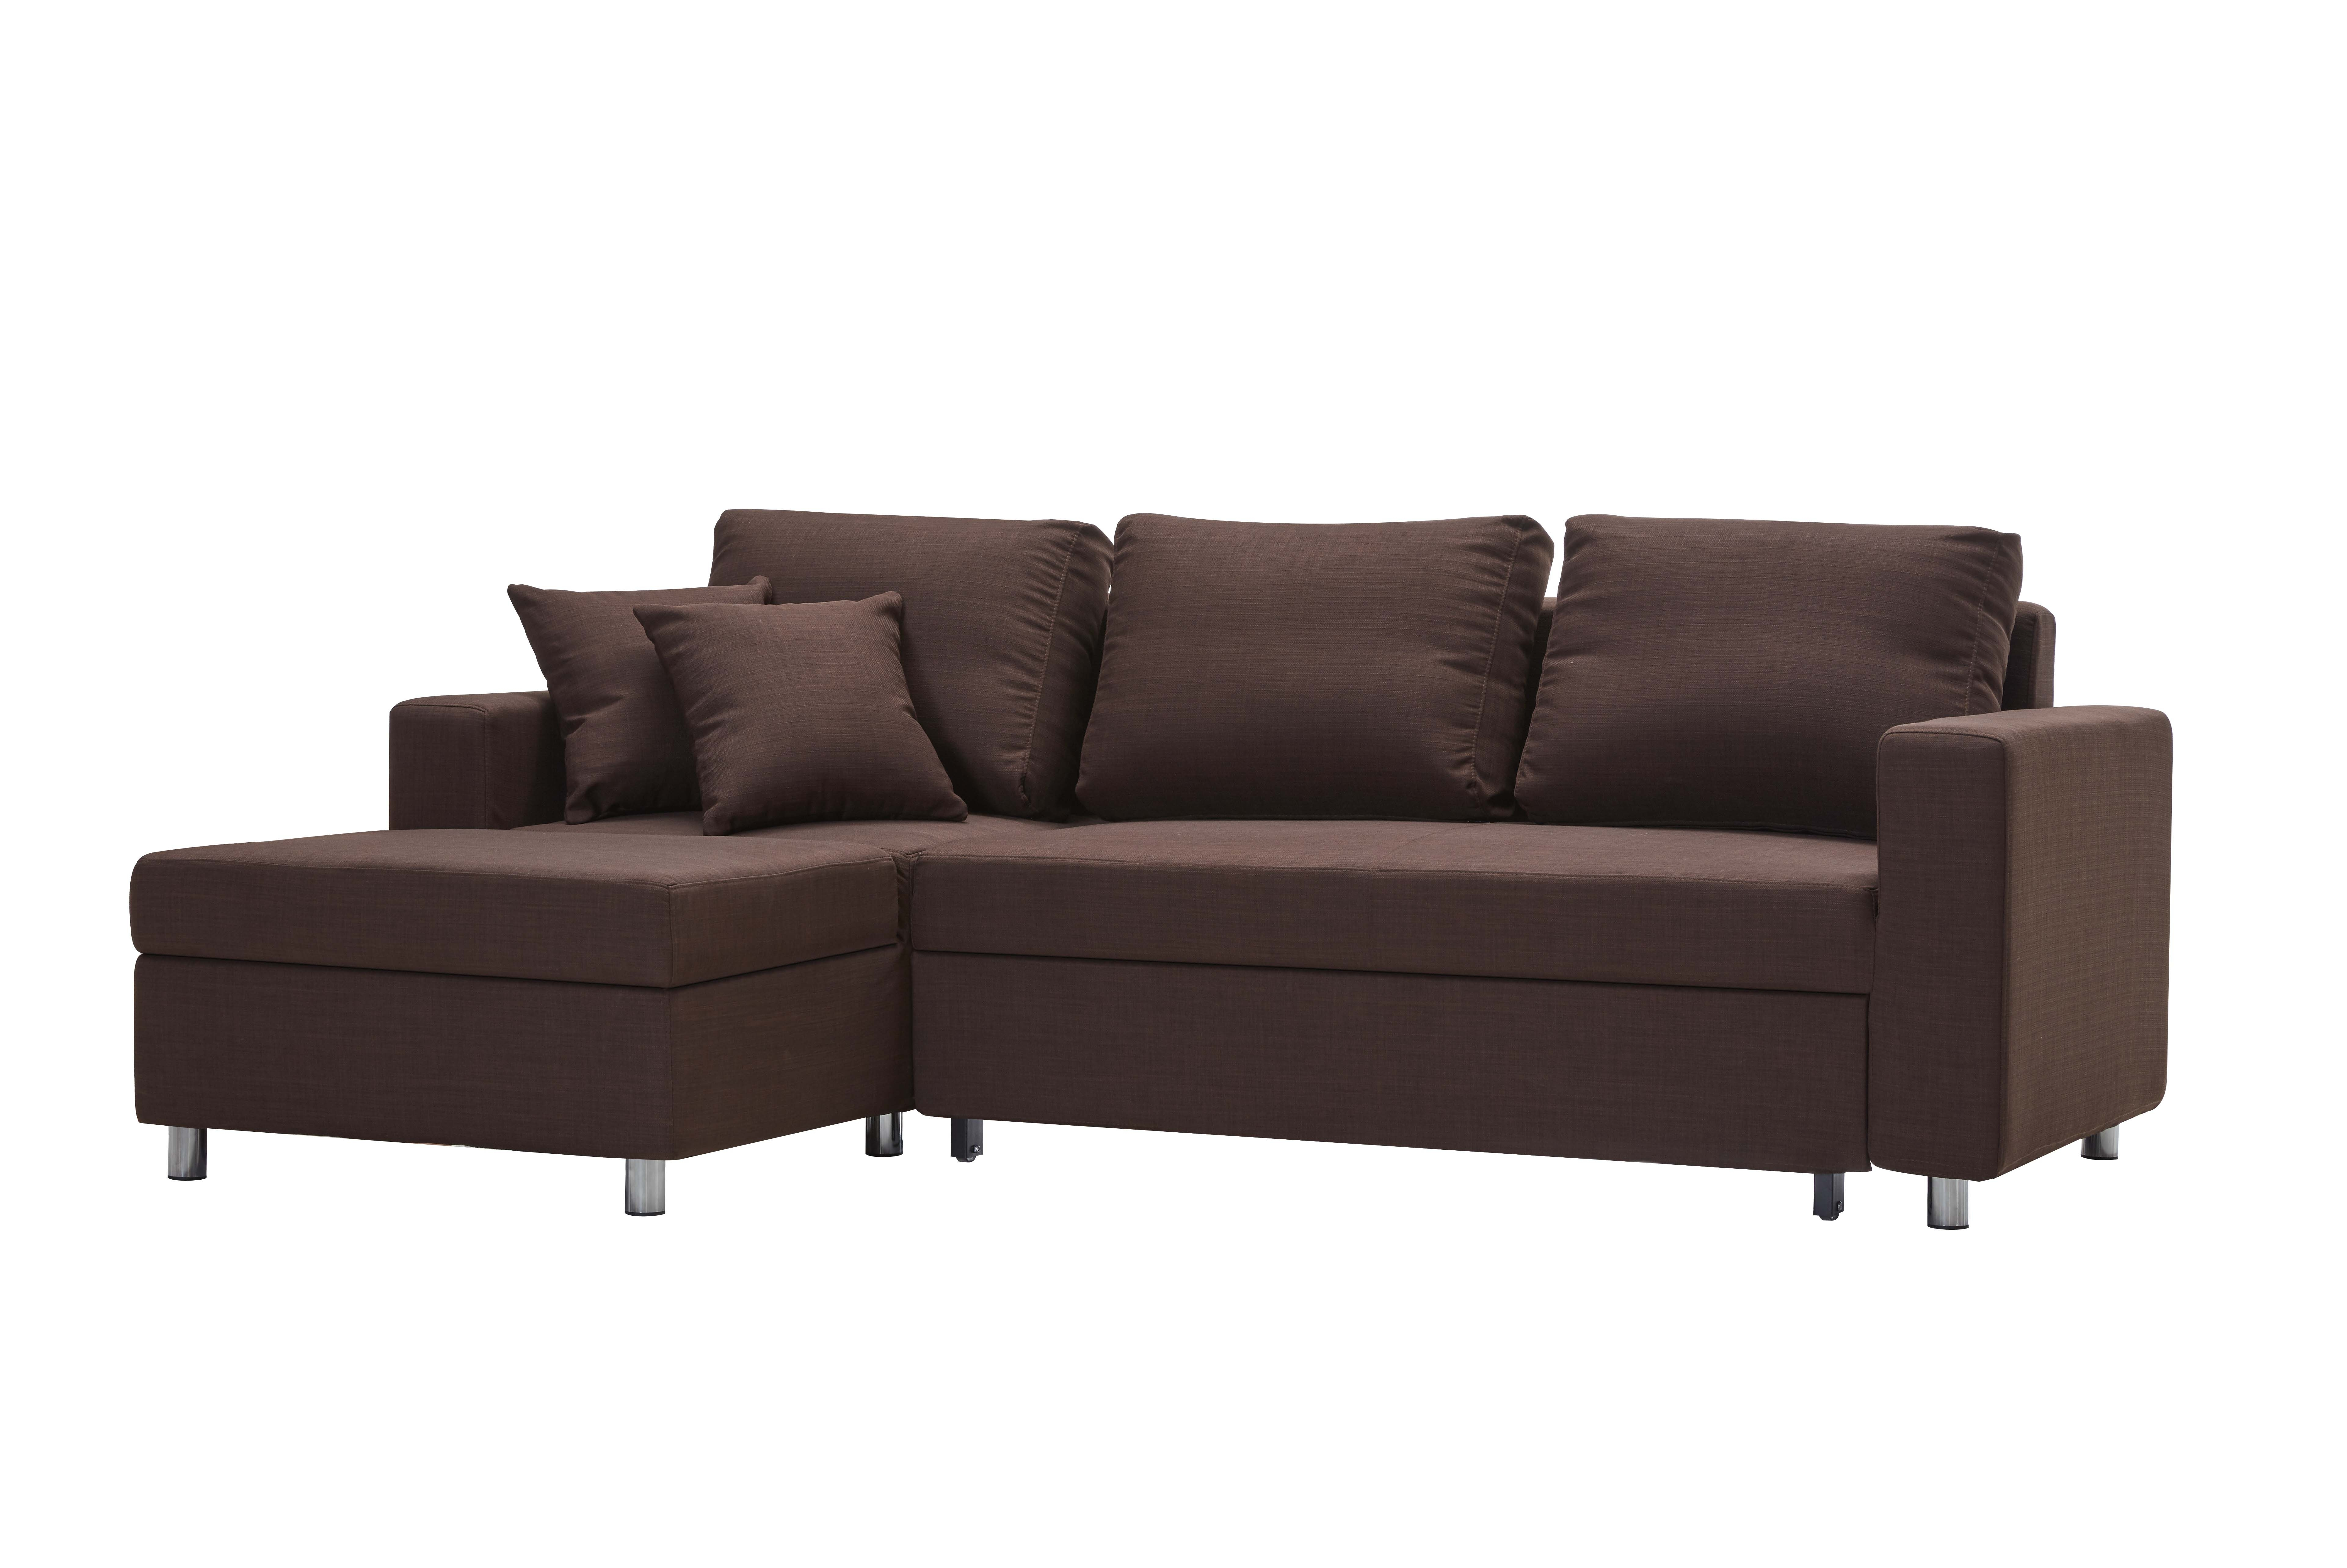 Sofa Beds And Sectional Sofa Beds – Check Out Our Selection Below Throughout Vancouver Bc Canada Sectional Sofas (Image 8 of 10)